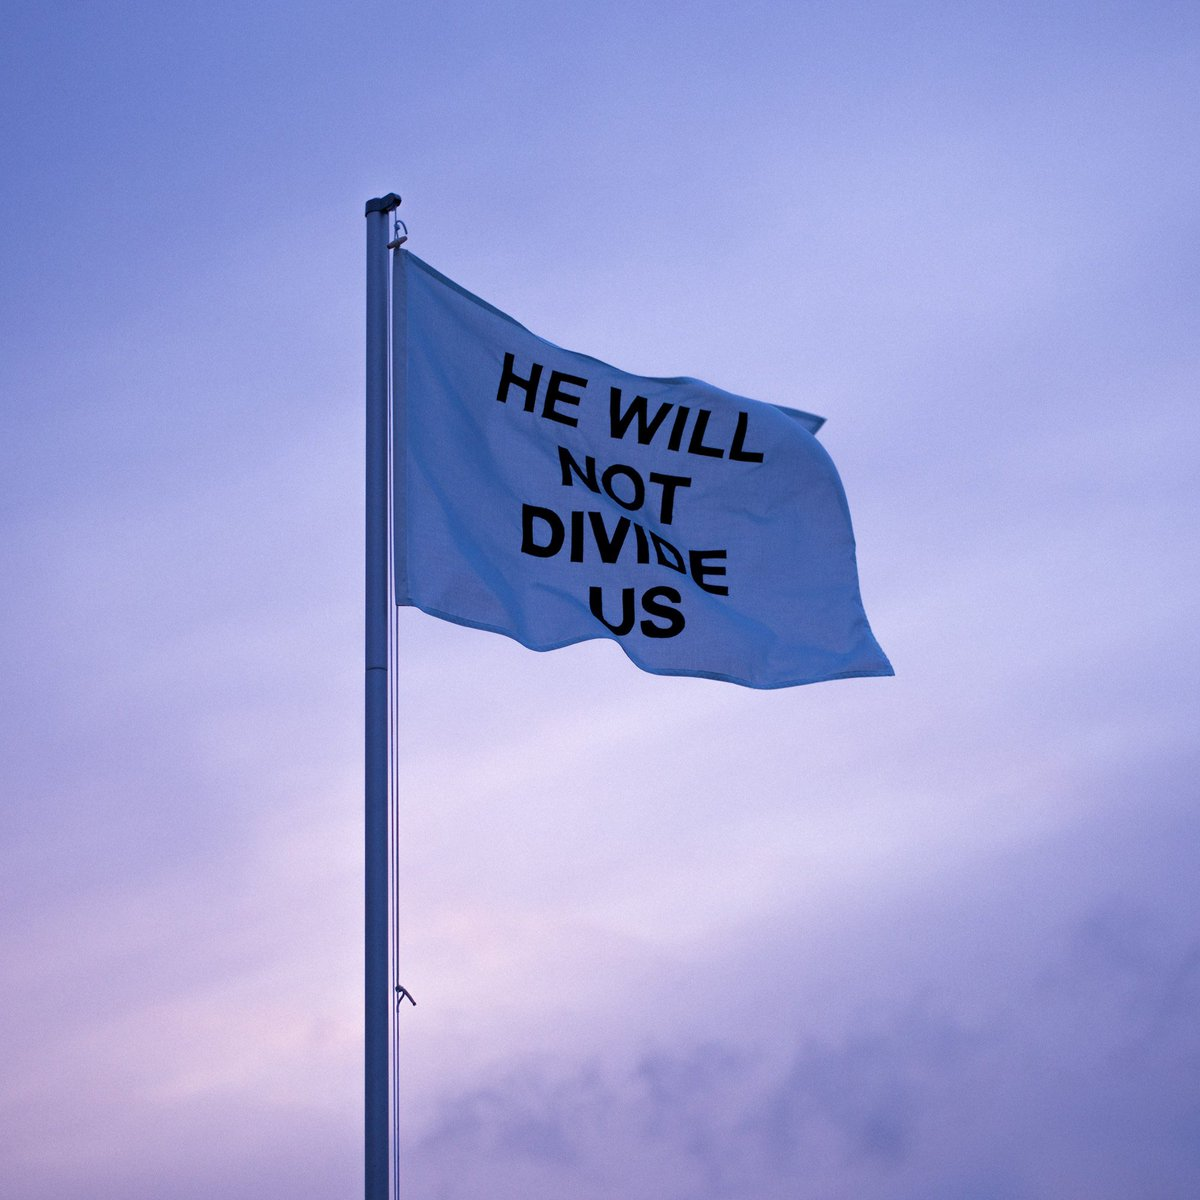 Shia LaBeouf Thecampaignbook Twitter - He will not divide us google maps